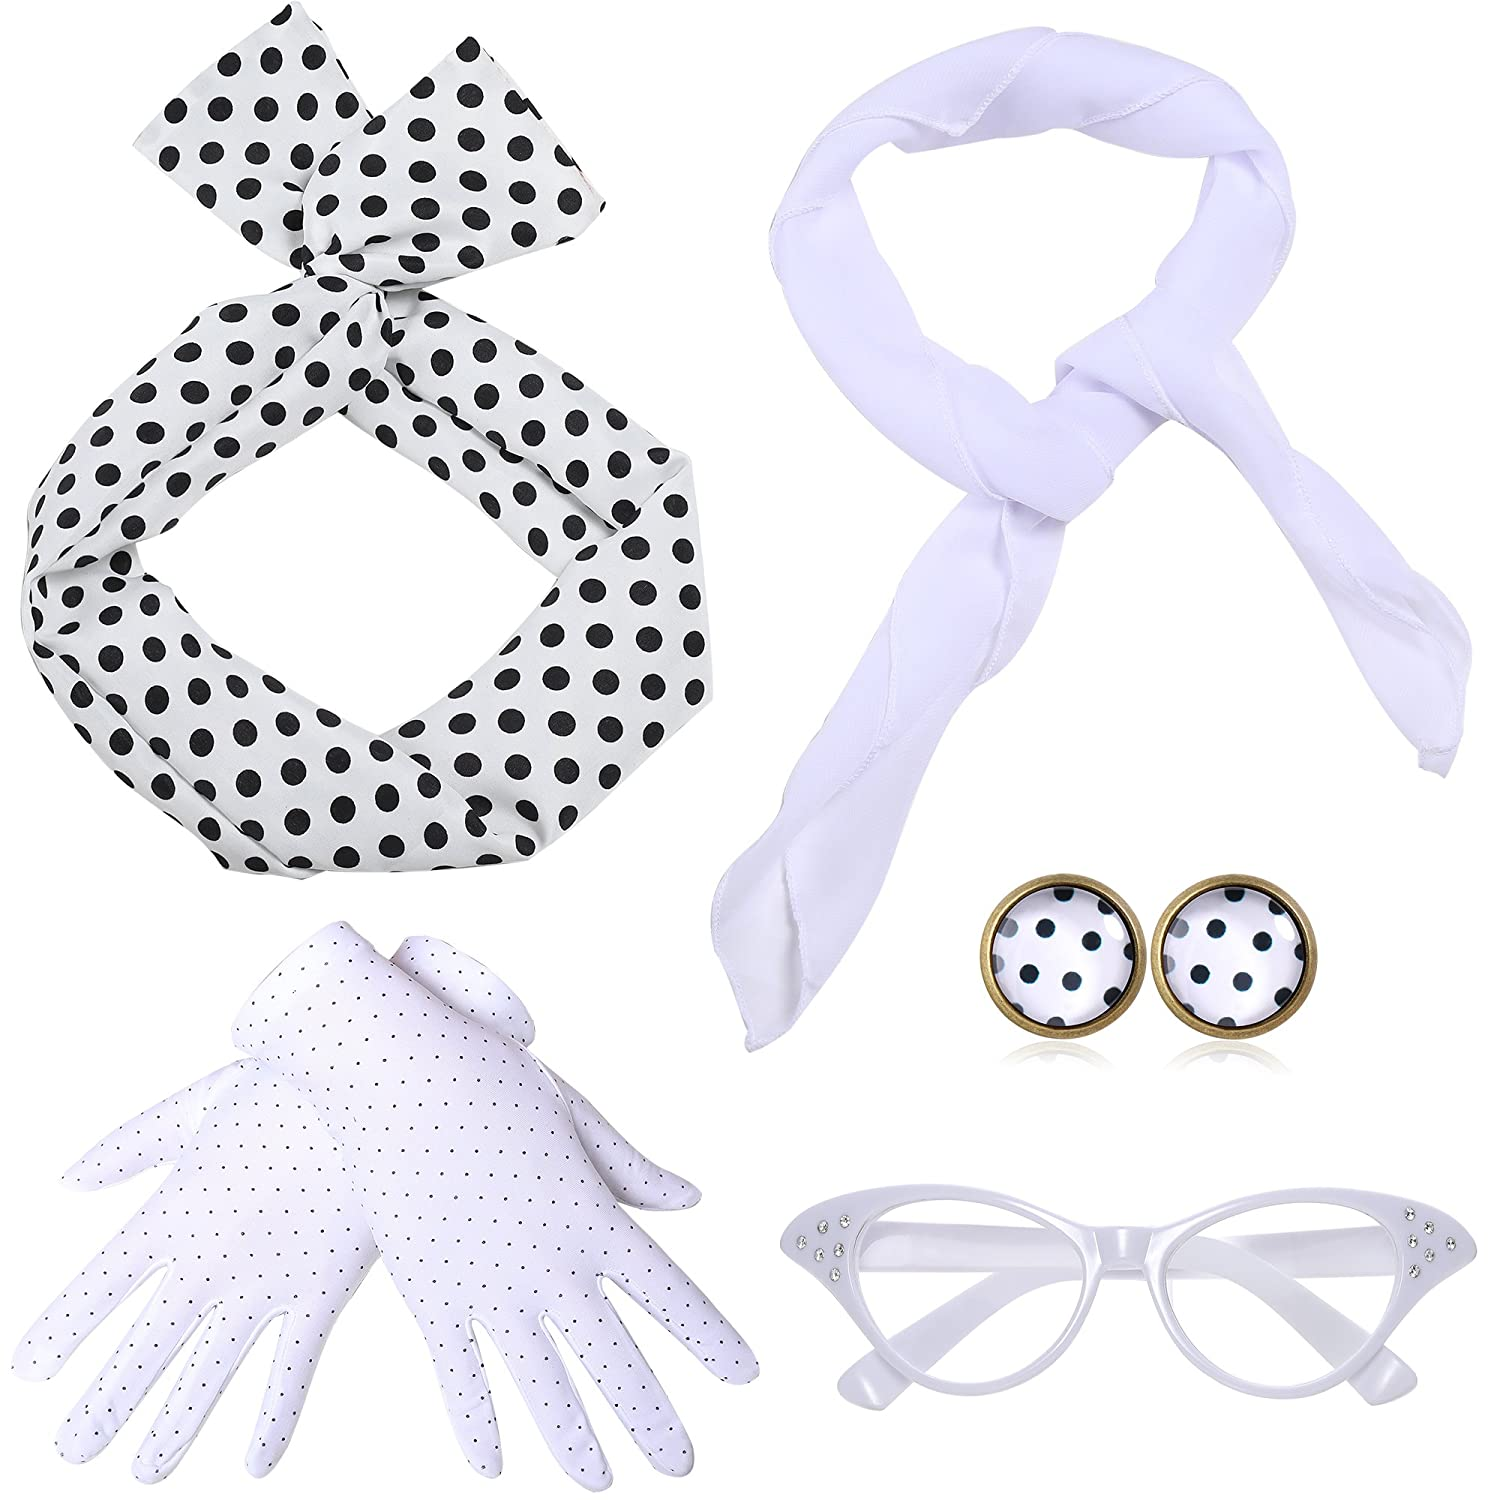 0544f60cfcb This 50s accessory set for women includes  1 bandana tie headband  1   chiffon scarf  1 cat eye glasses  1 pair of 50s dot earrings  1pair of dot  gloves.